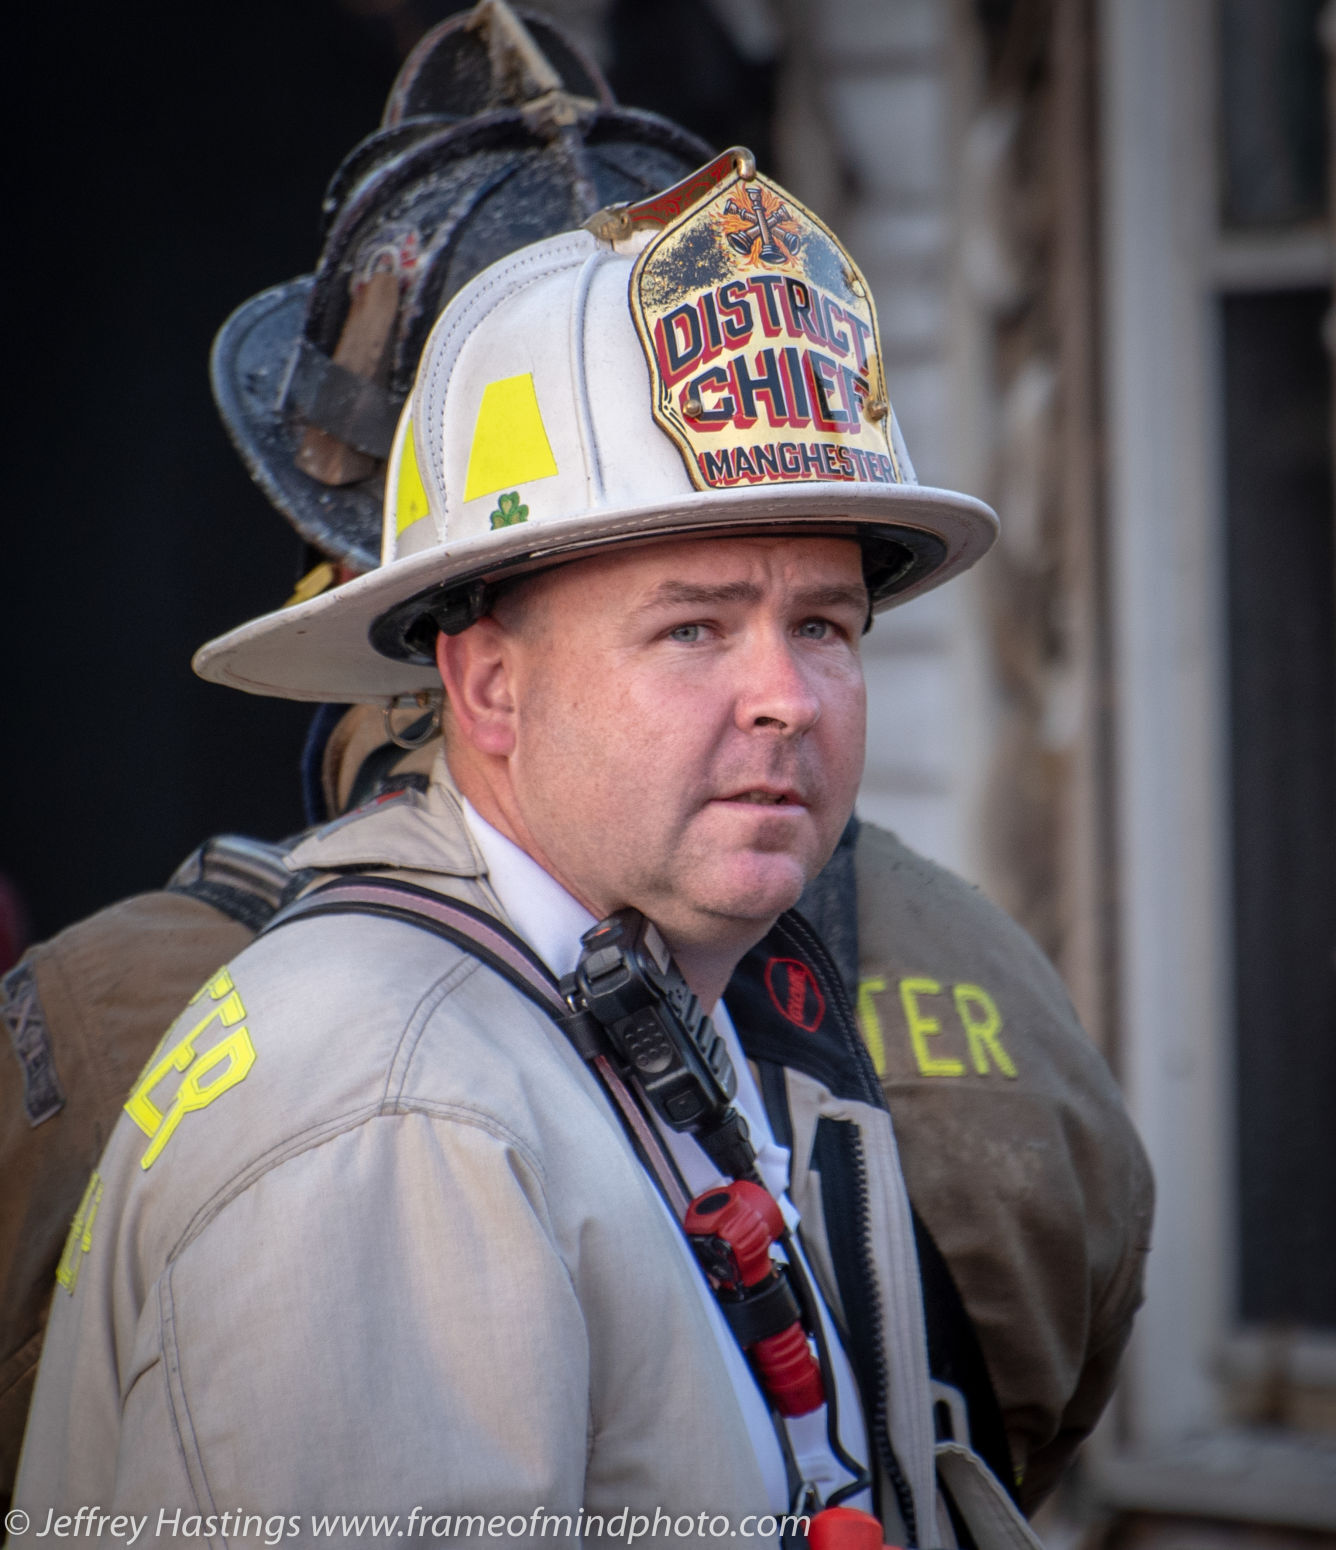 Grief counselors called in as Manchester firefighters grieve loss of Asst. Chief Burns